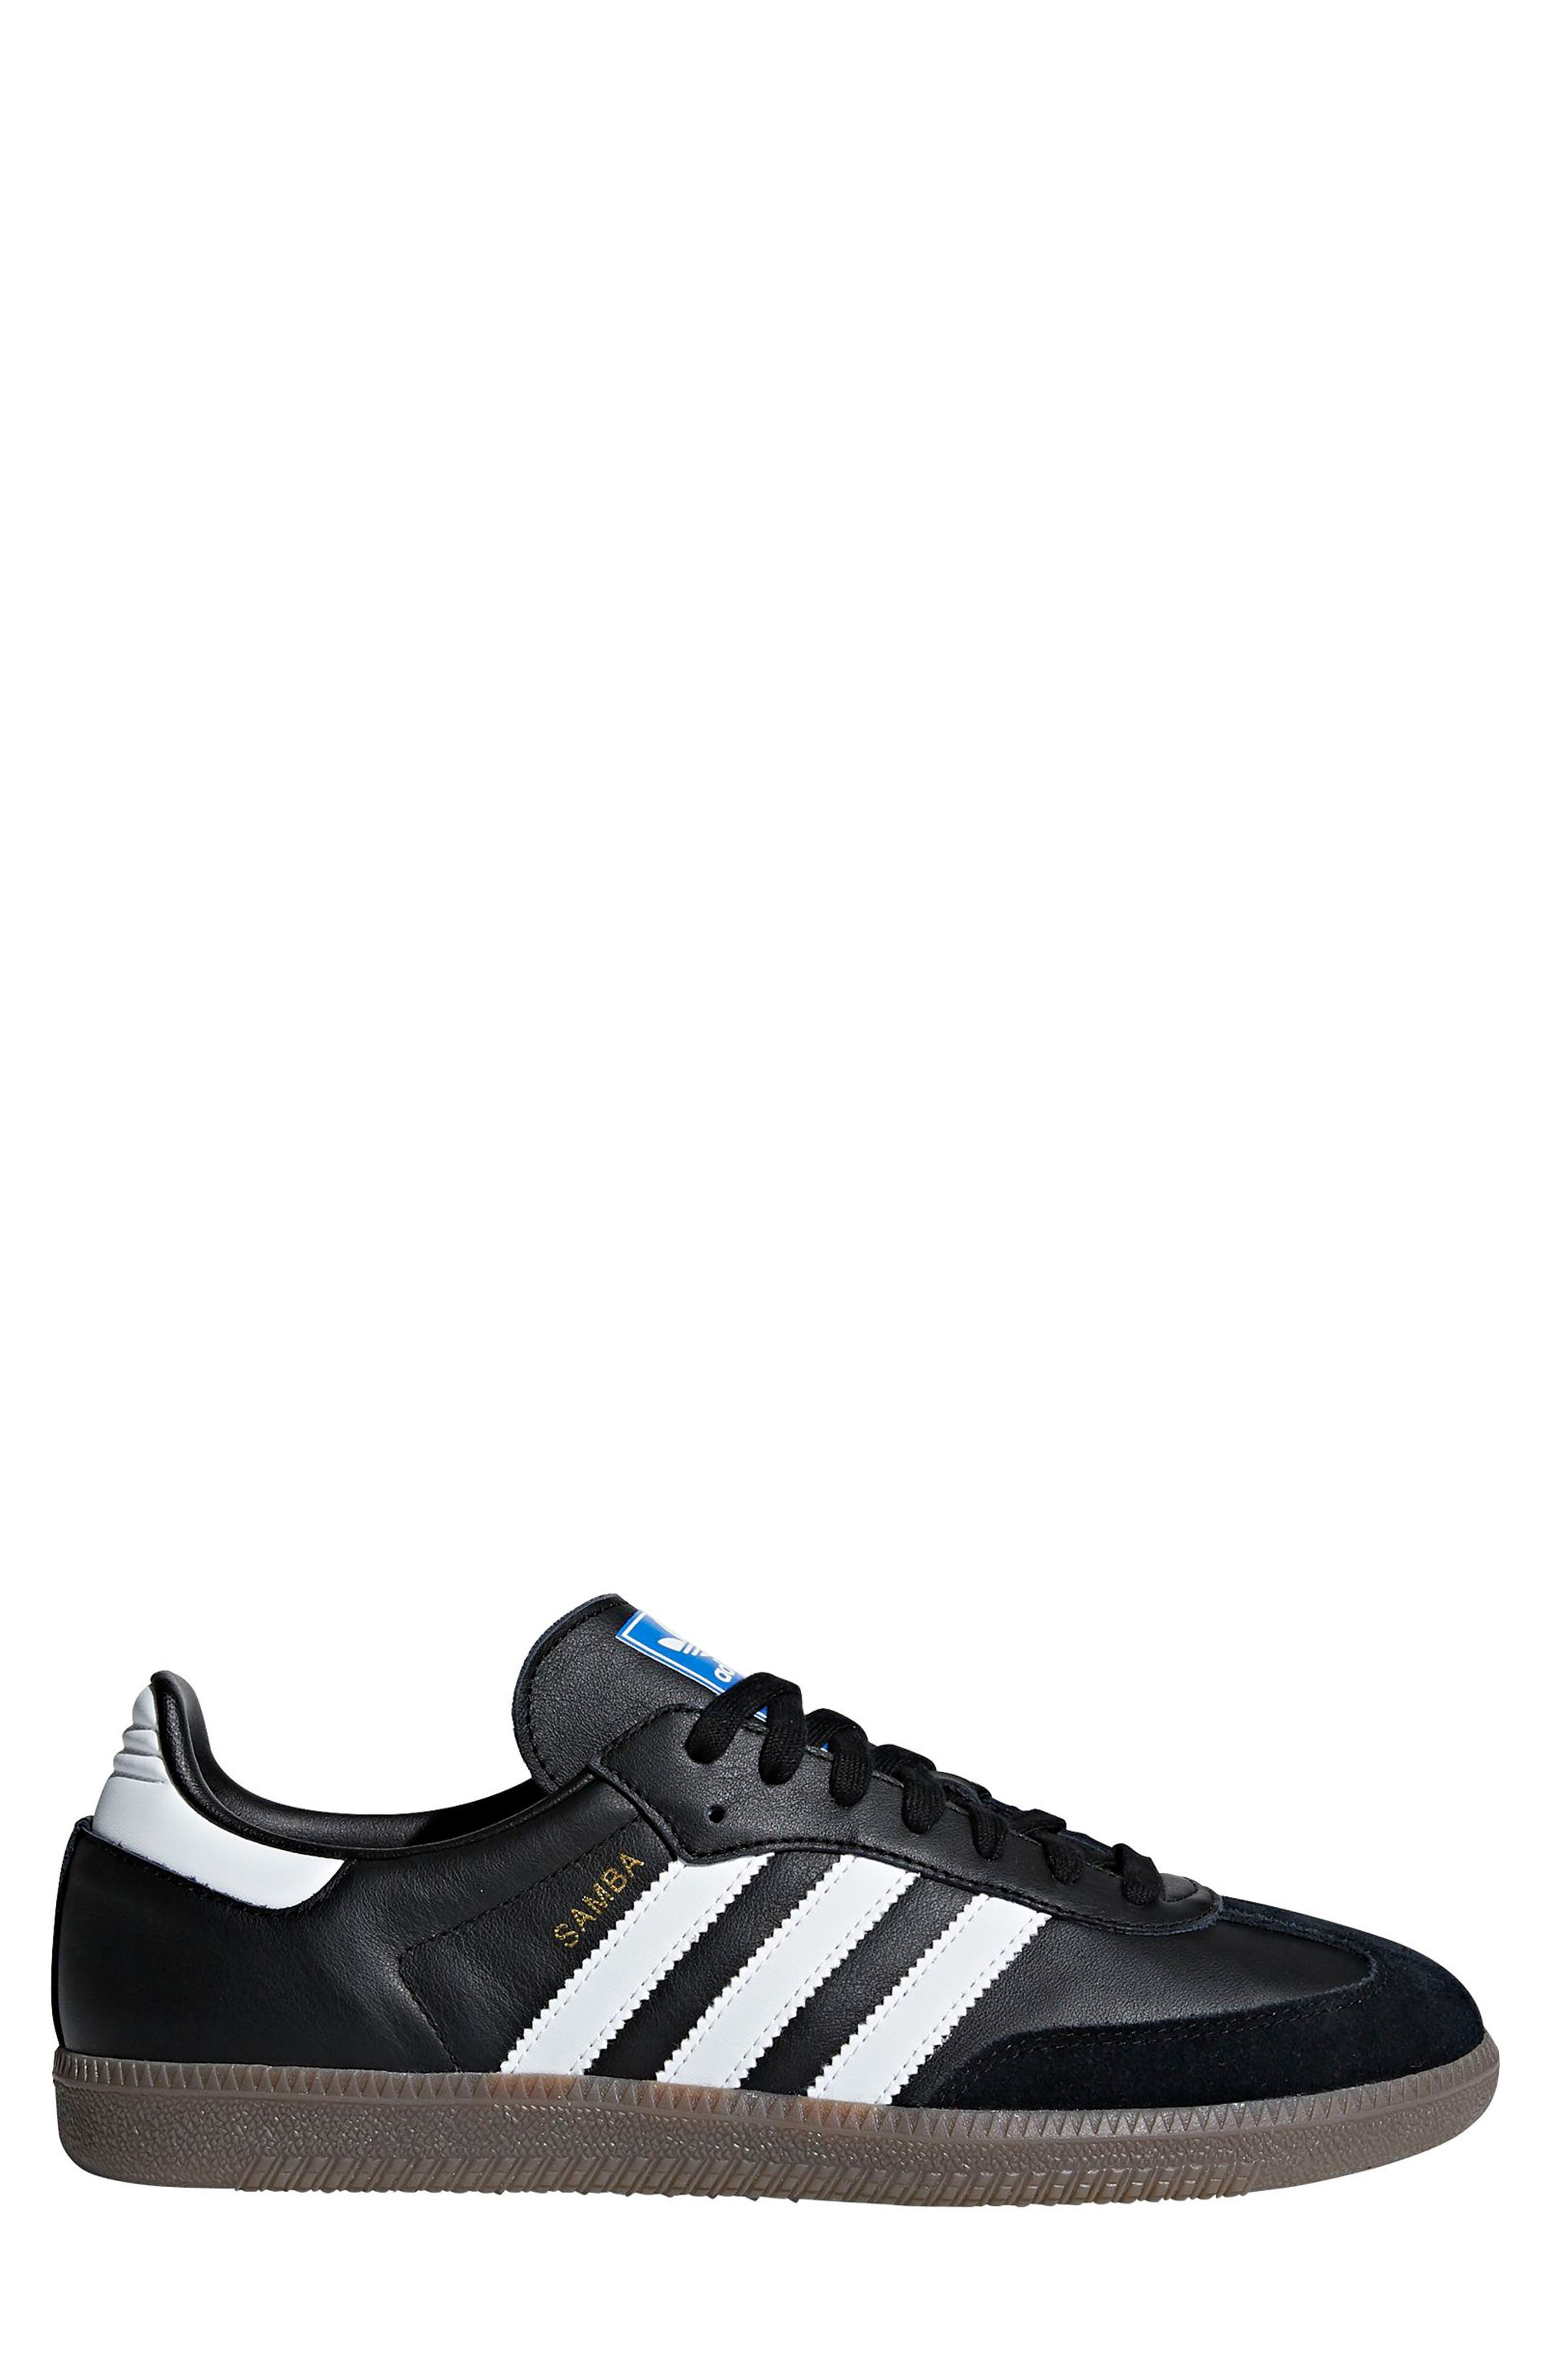 ADIDAS, Samba OG Sneaker, Main thumbnail 1, color, BLACK/ WHITE/ GUM